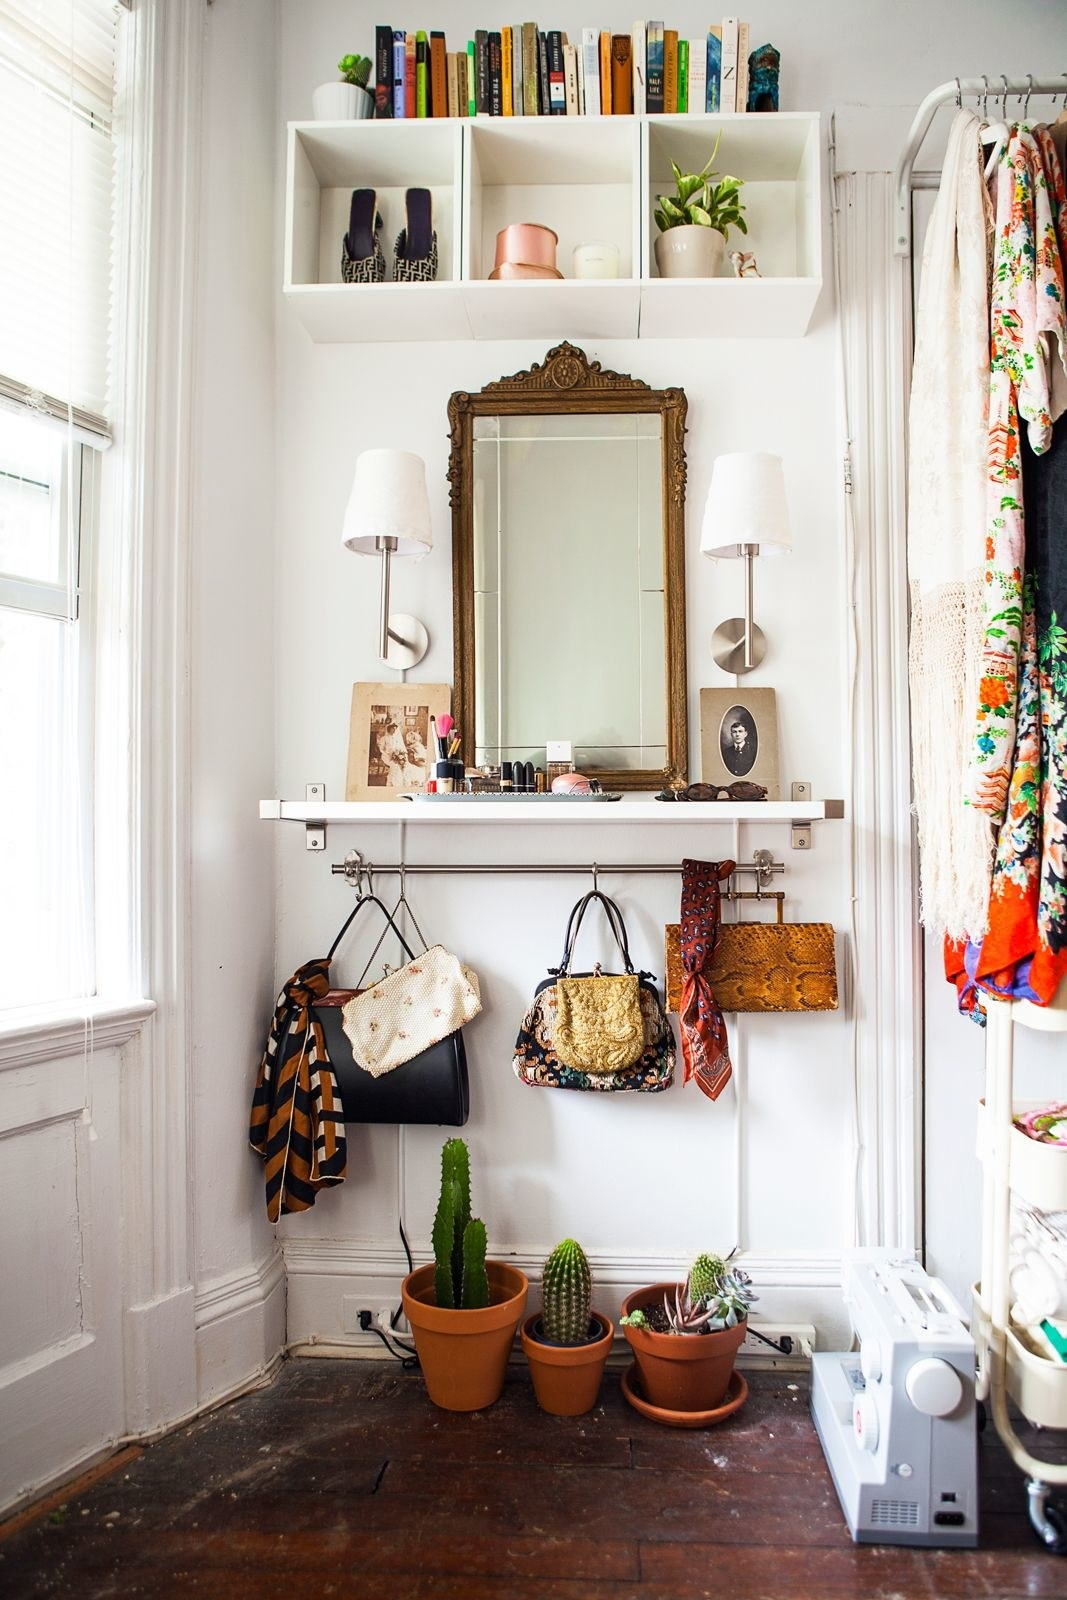 13 Cheap Organization Tricks For Every Room In Your Home